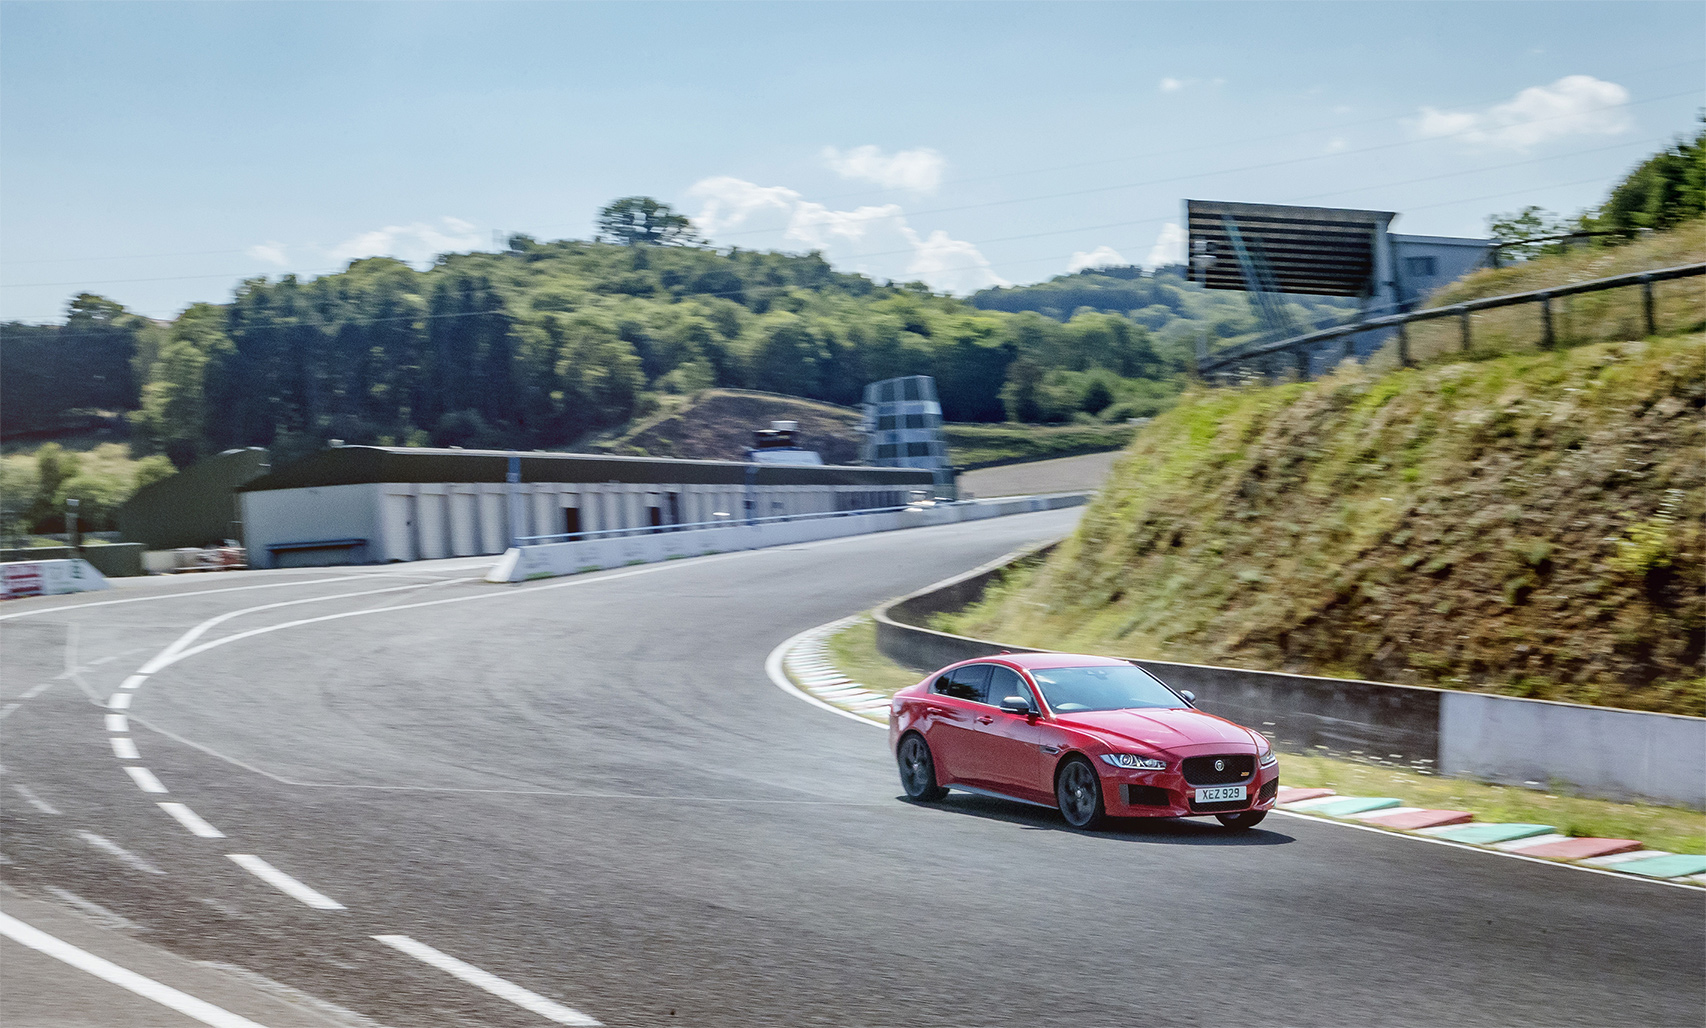 TrackWorthy - 2019 Jaguar XE 300 SPORT at Forgotten GP Circuit (4)